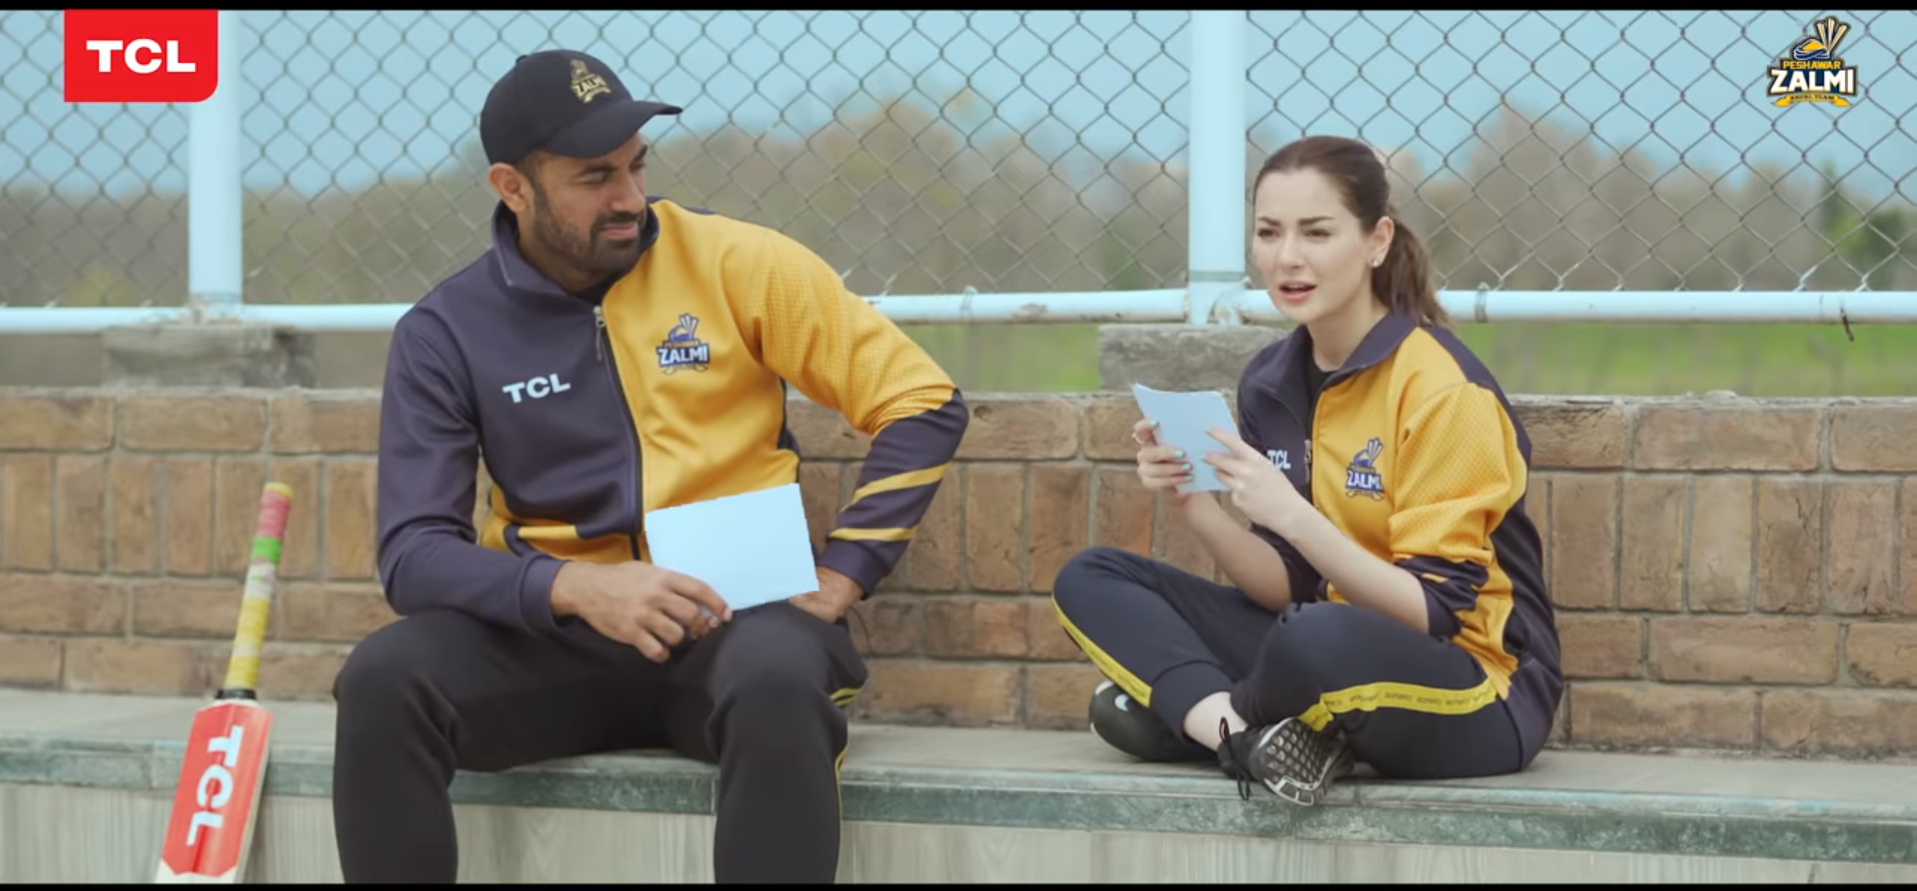 Wahab Riaz and Hania Aamir TCL Brand Ambassadors for PSL 2020